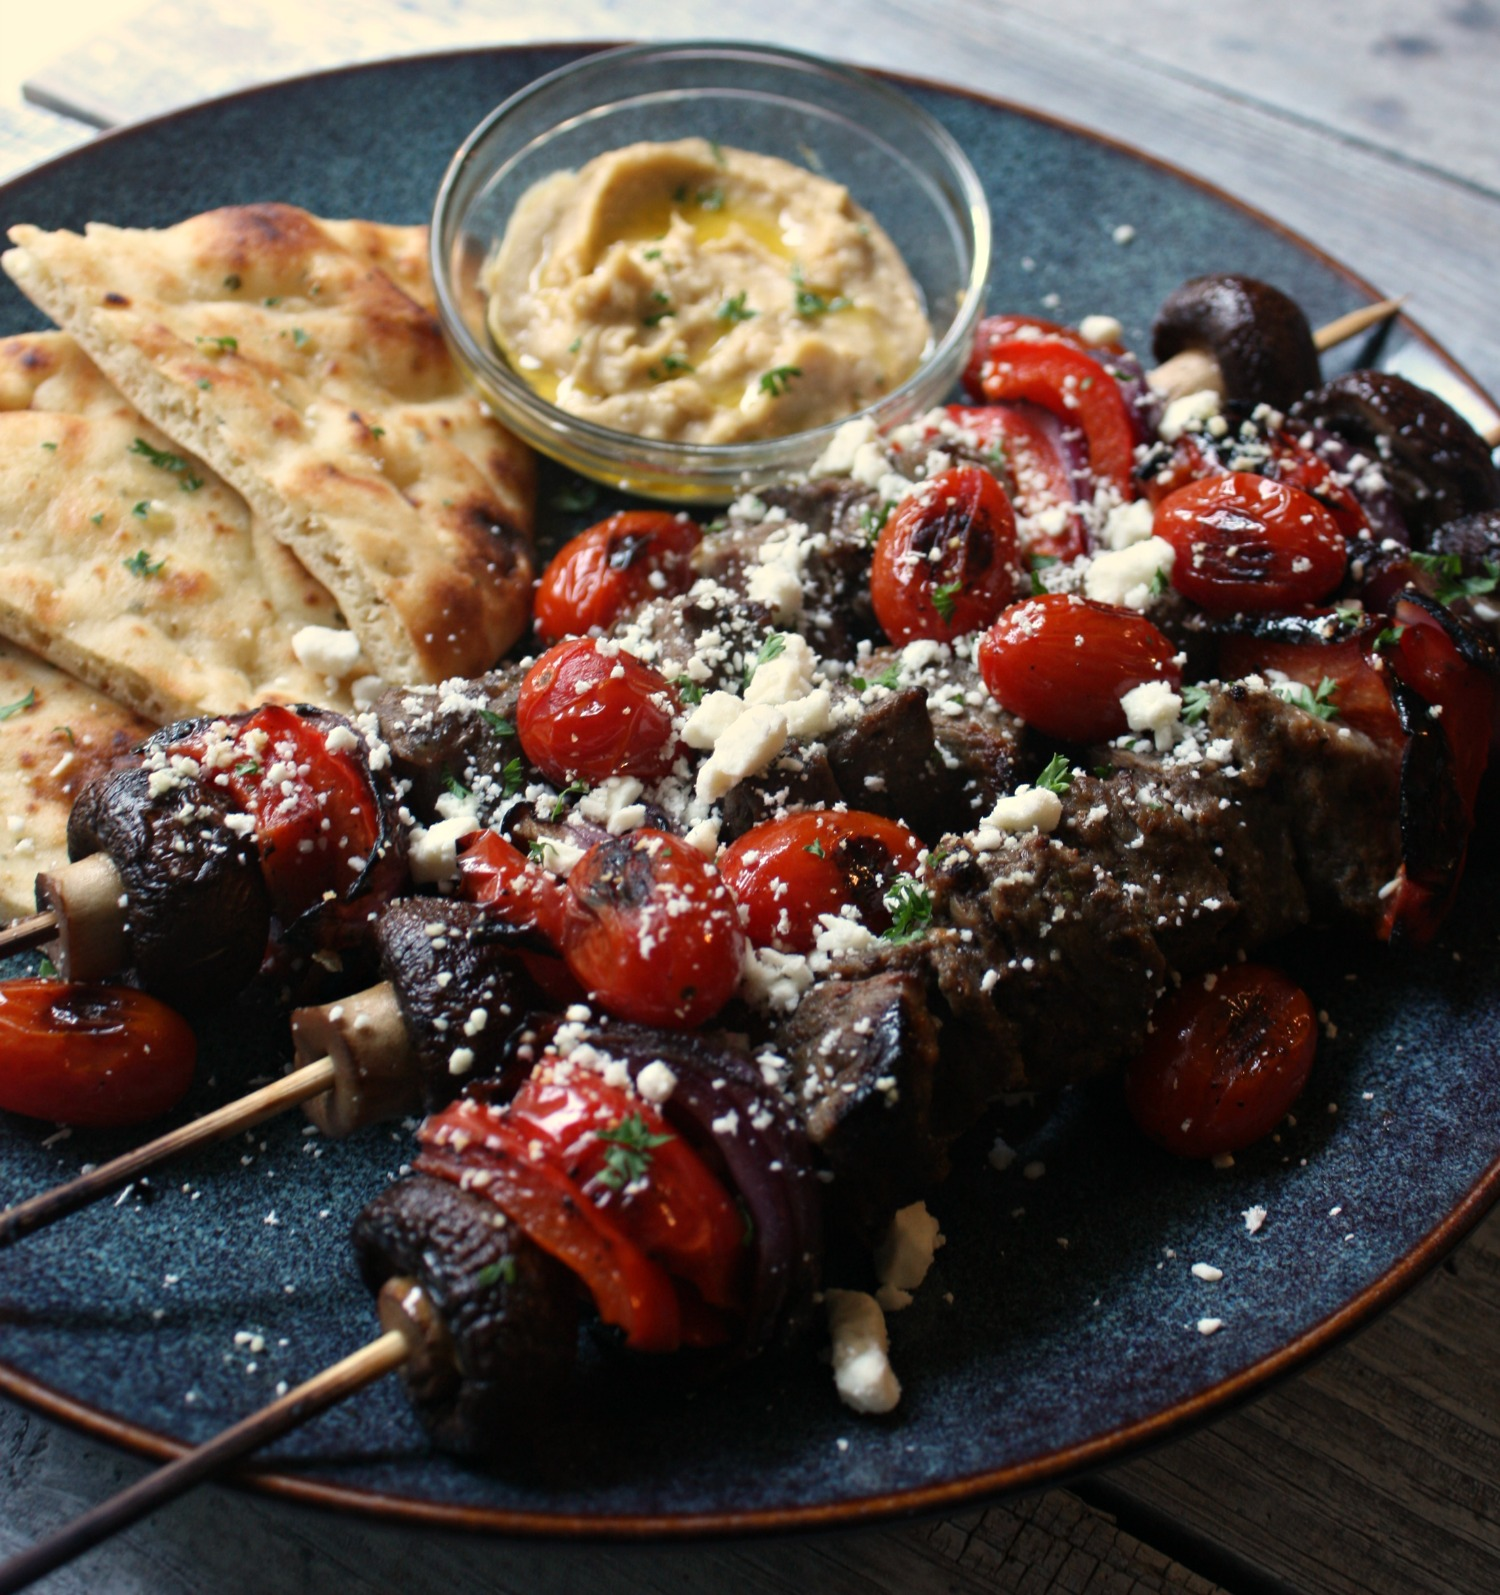 Beef Kabobs with Blistered Tomatoes and Feta Cheese. Served with grilled naan bread and a side of hummus.